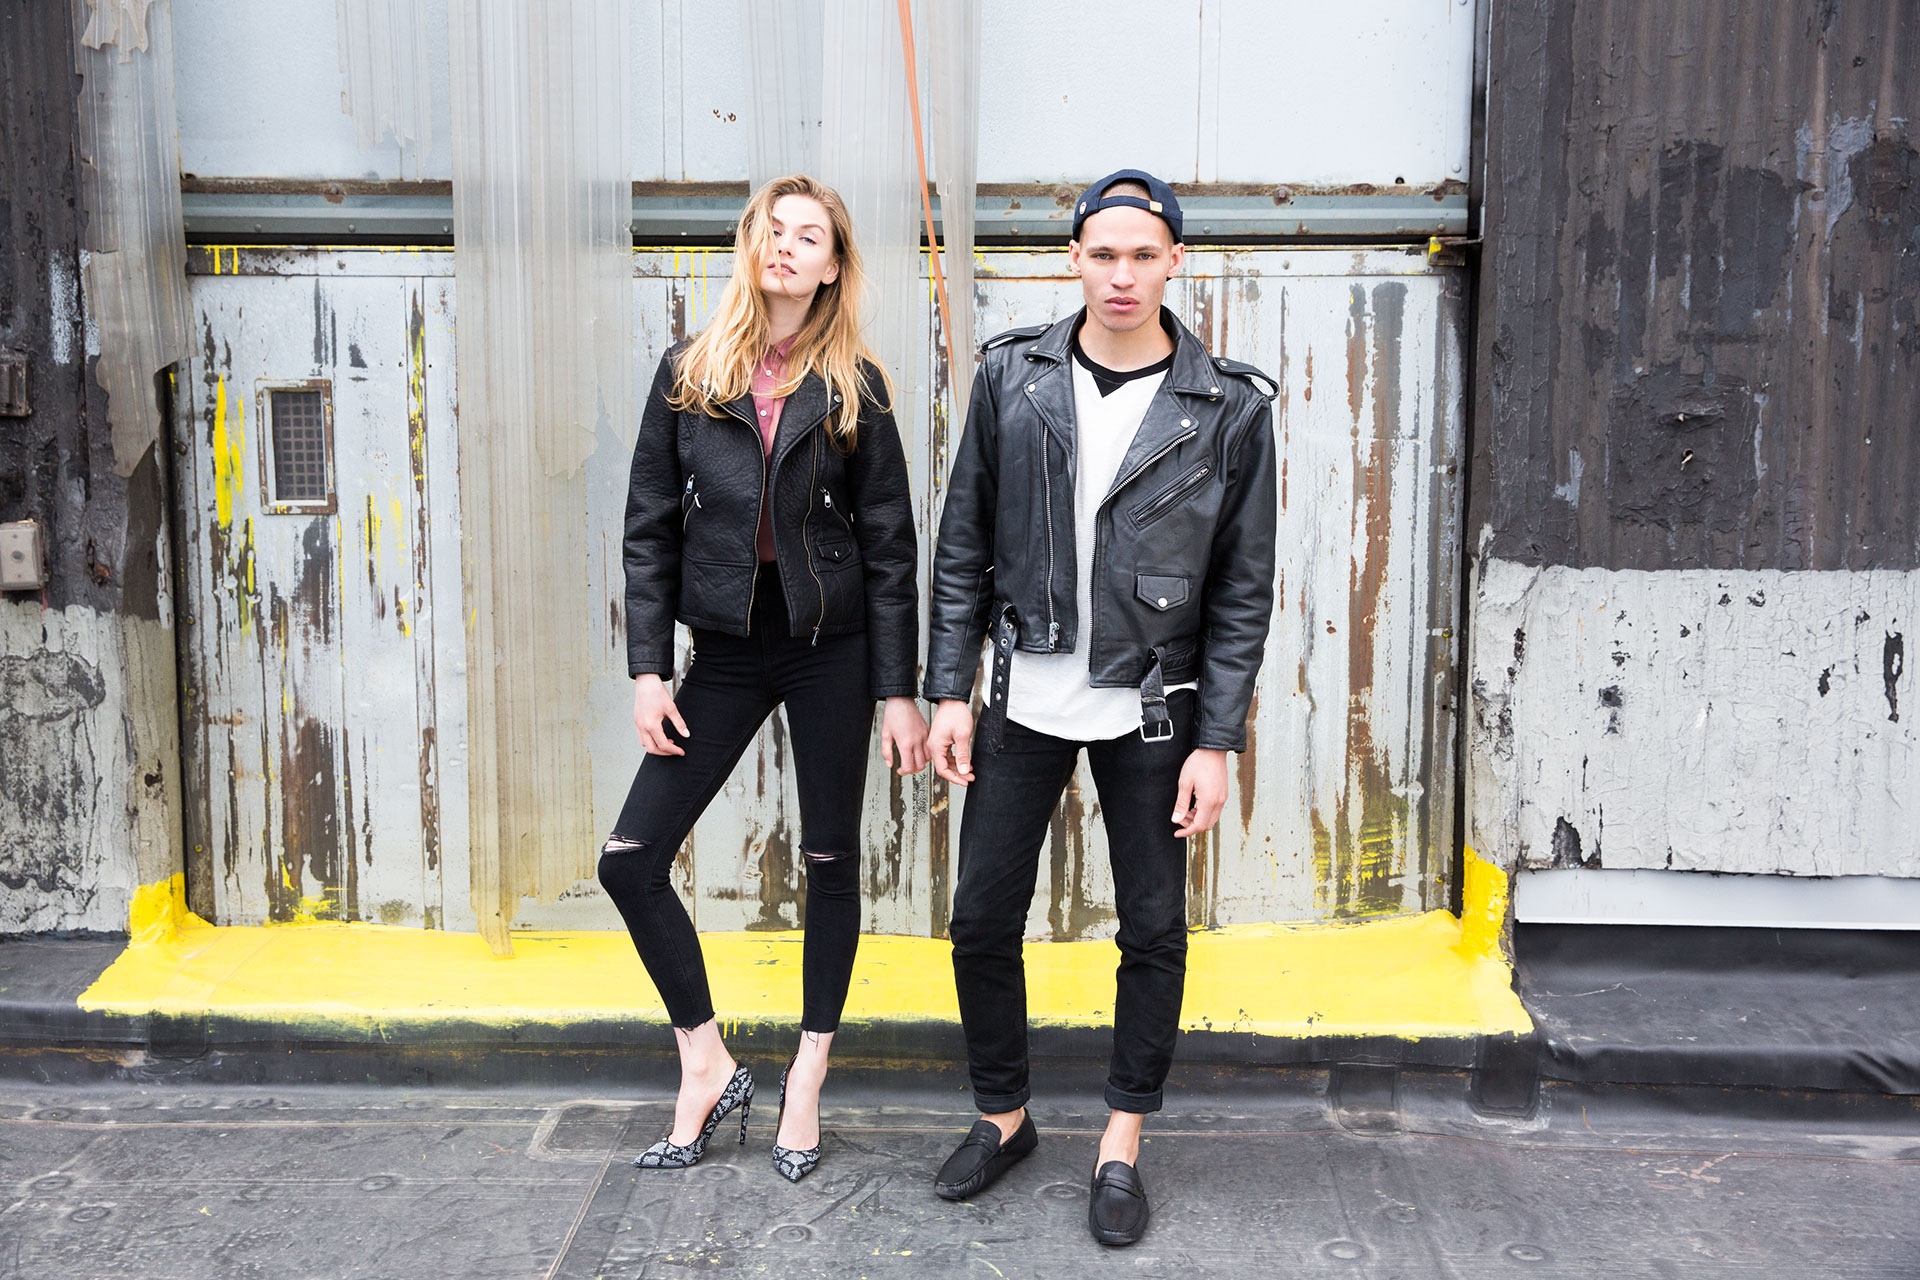 steve-madden-fw15-campaign-styled-by-andrea-messier-cuomo-7.jpg